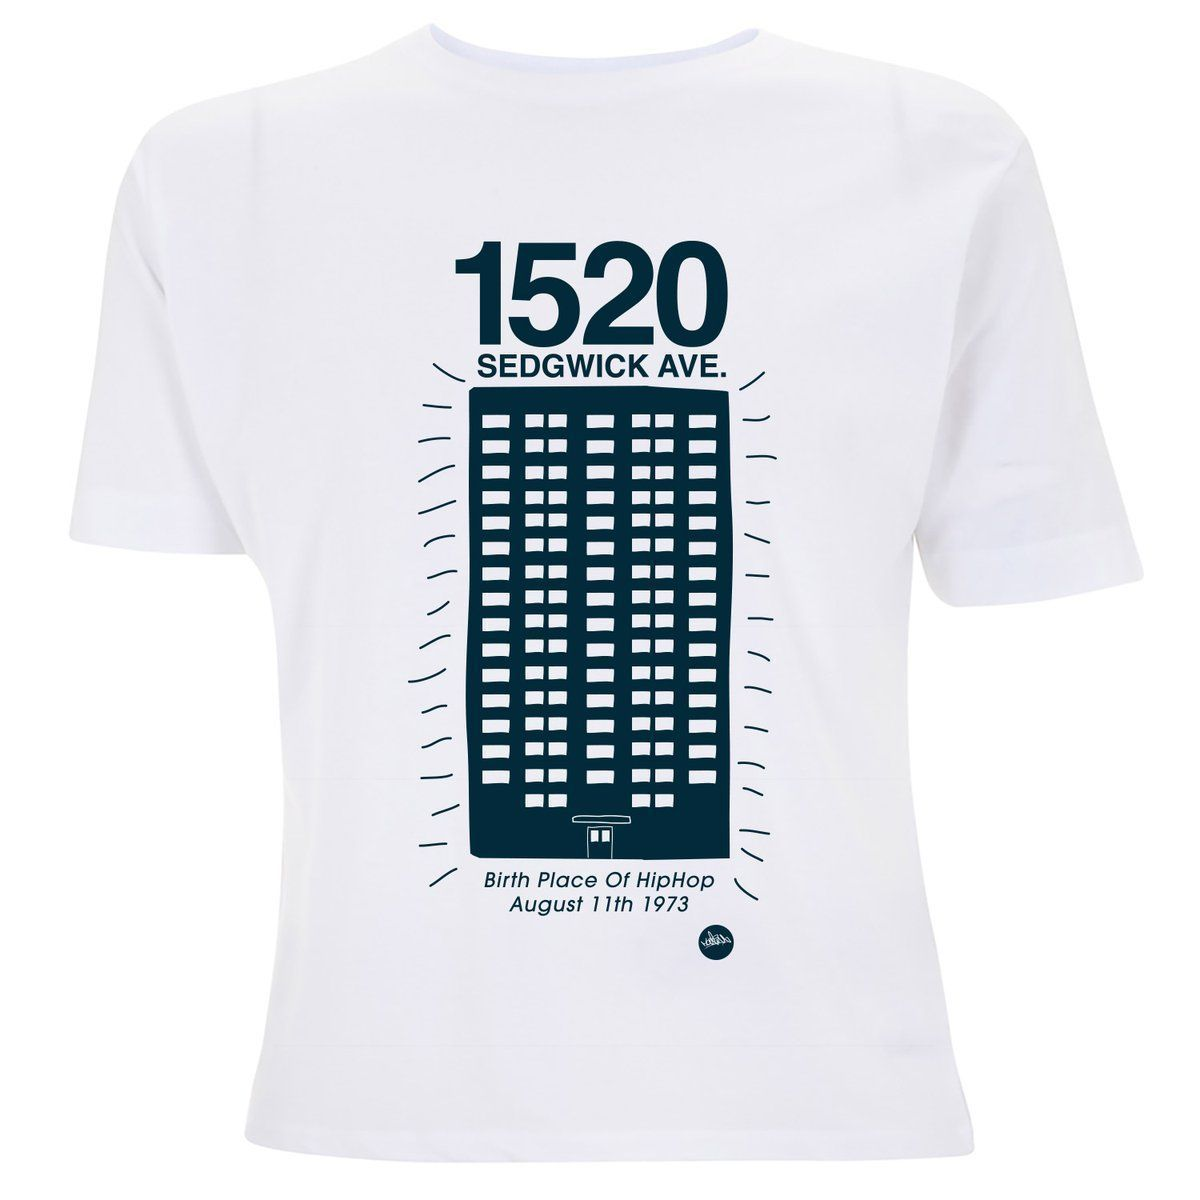 LOW STOCK! Celebrating the birthplace of #HipHop This classic is back in 2 New Colourways... 1520 Sedgwick Ave Design >> Available to order here >>   << #KoolHerc #Bronx #NewYork #Fashion #Clothing #Design #FridayFeeling RT